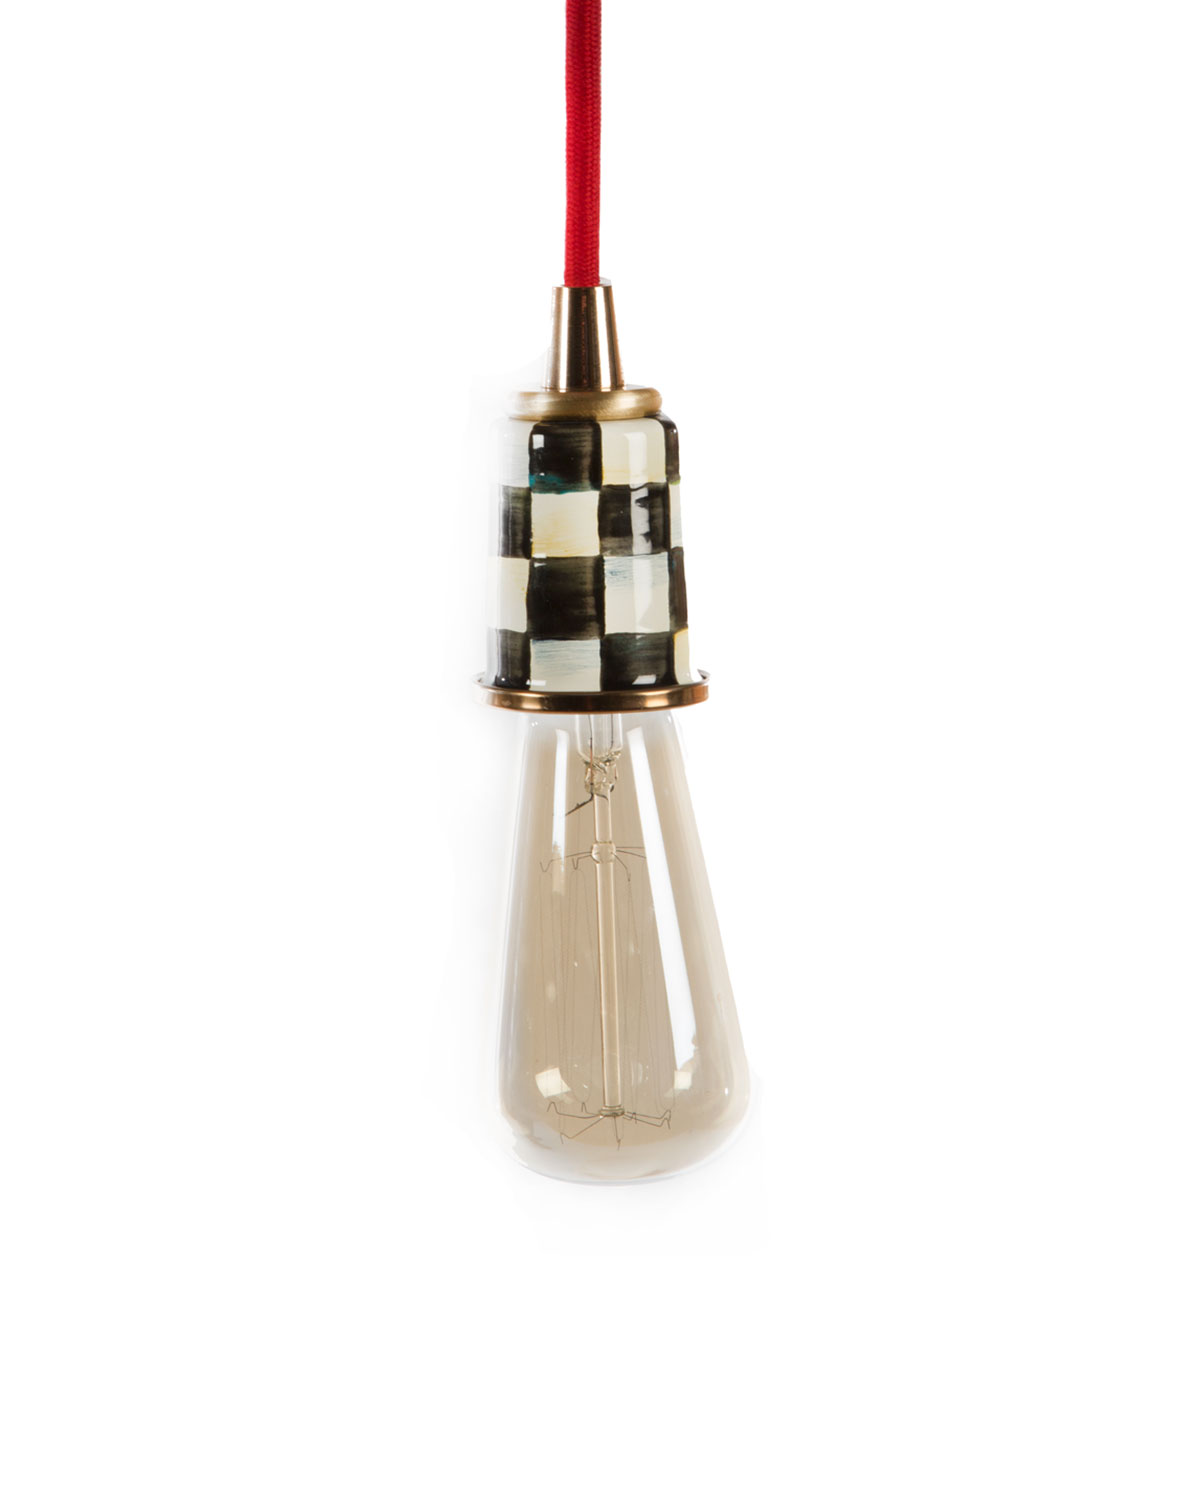 Mackenzie childs red mini pendant light neiman marcus red mini pendant light aloadofball Image collections